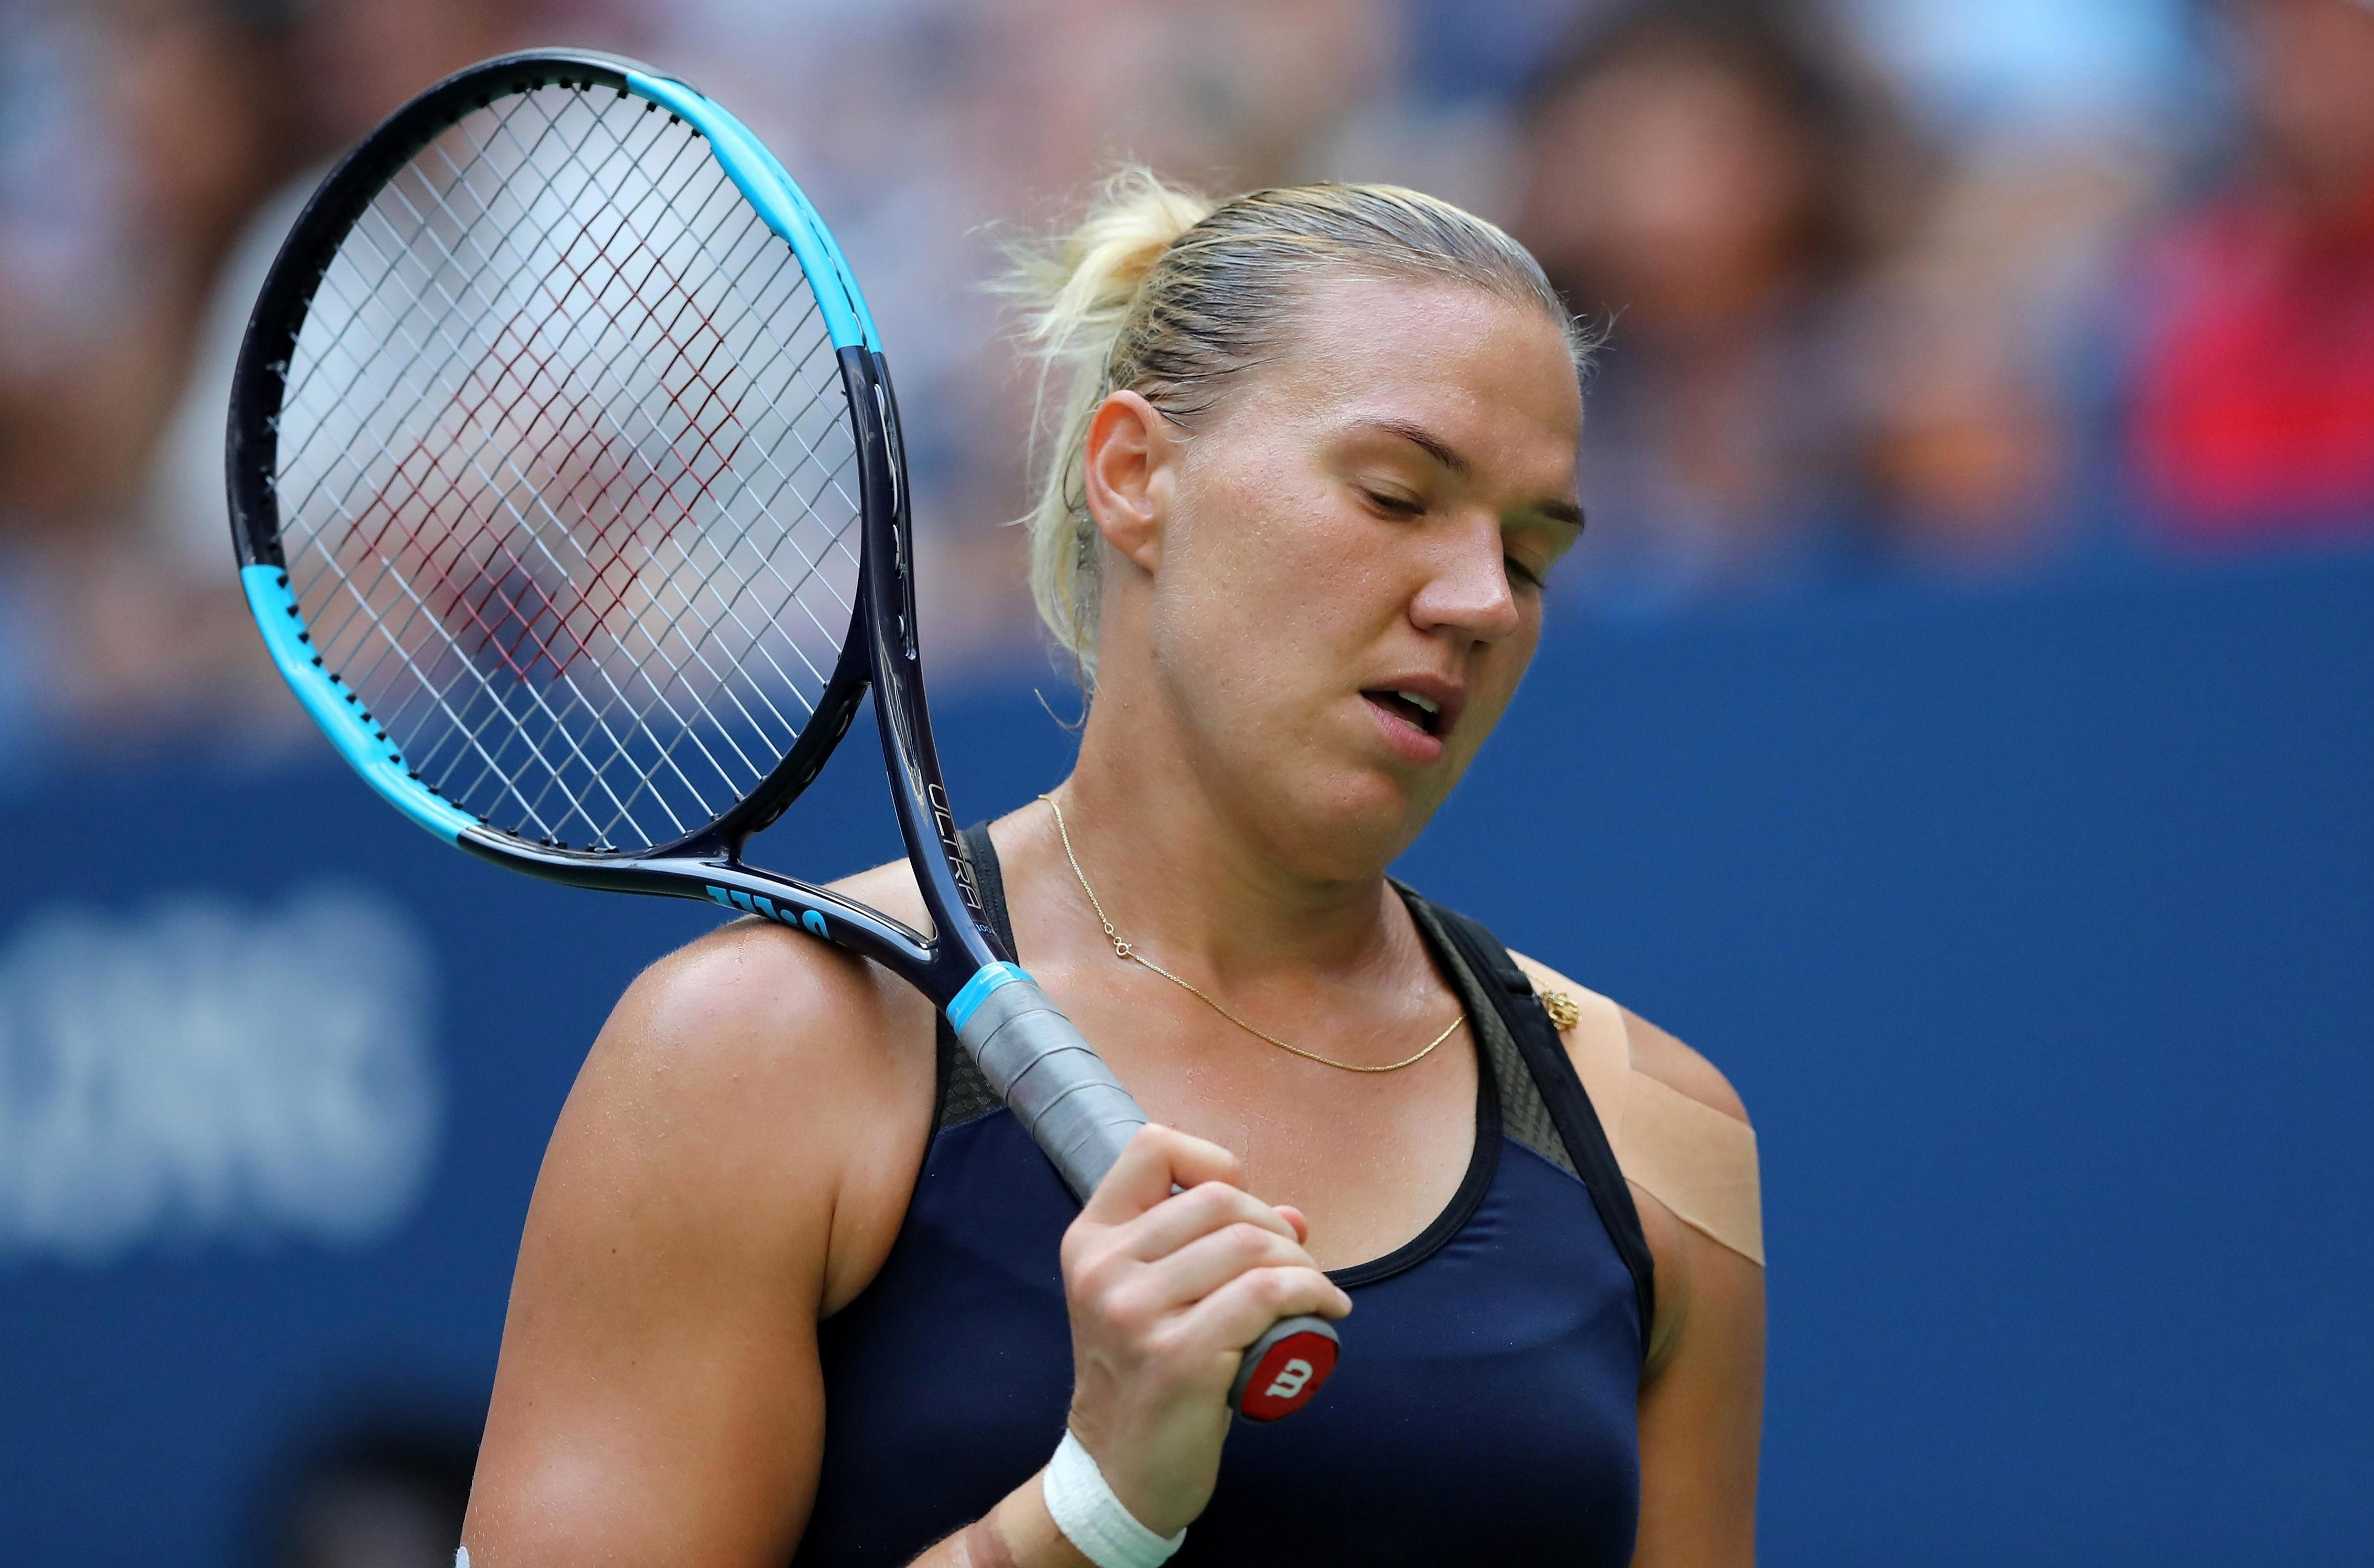 Kanepi knocked out world No1 and top seed Simona Halep in the first round